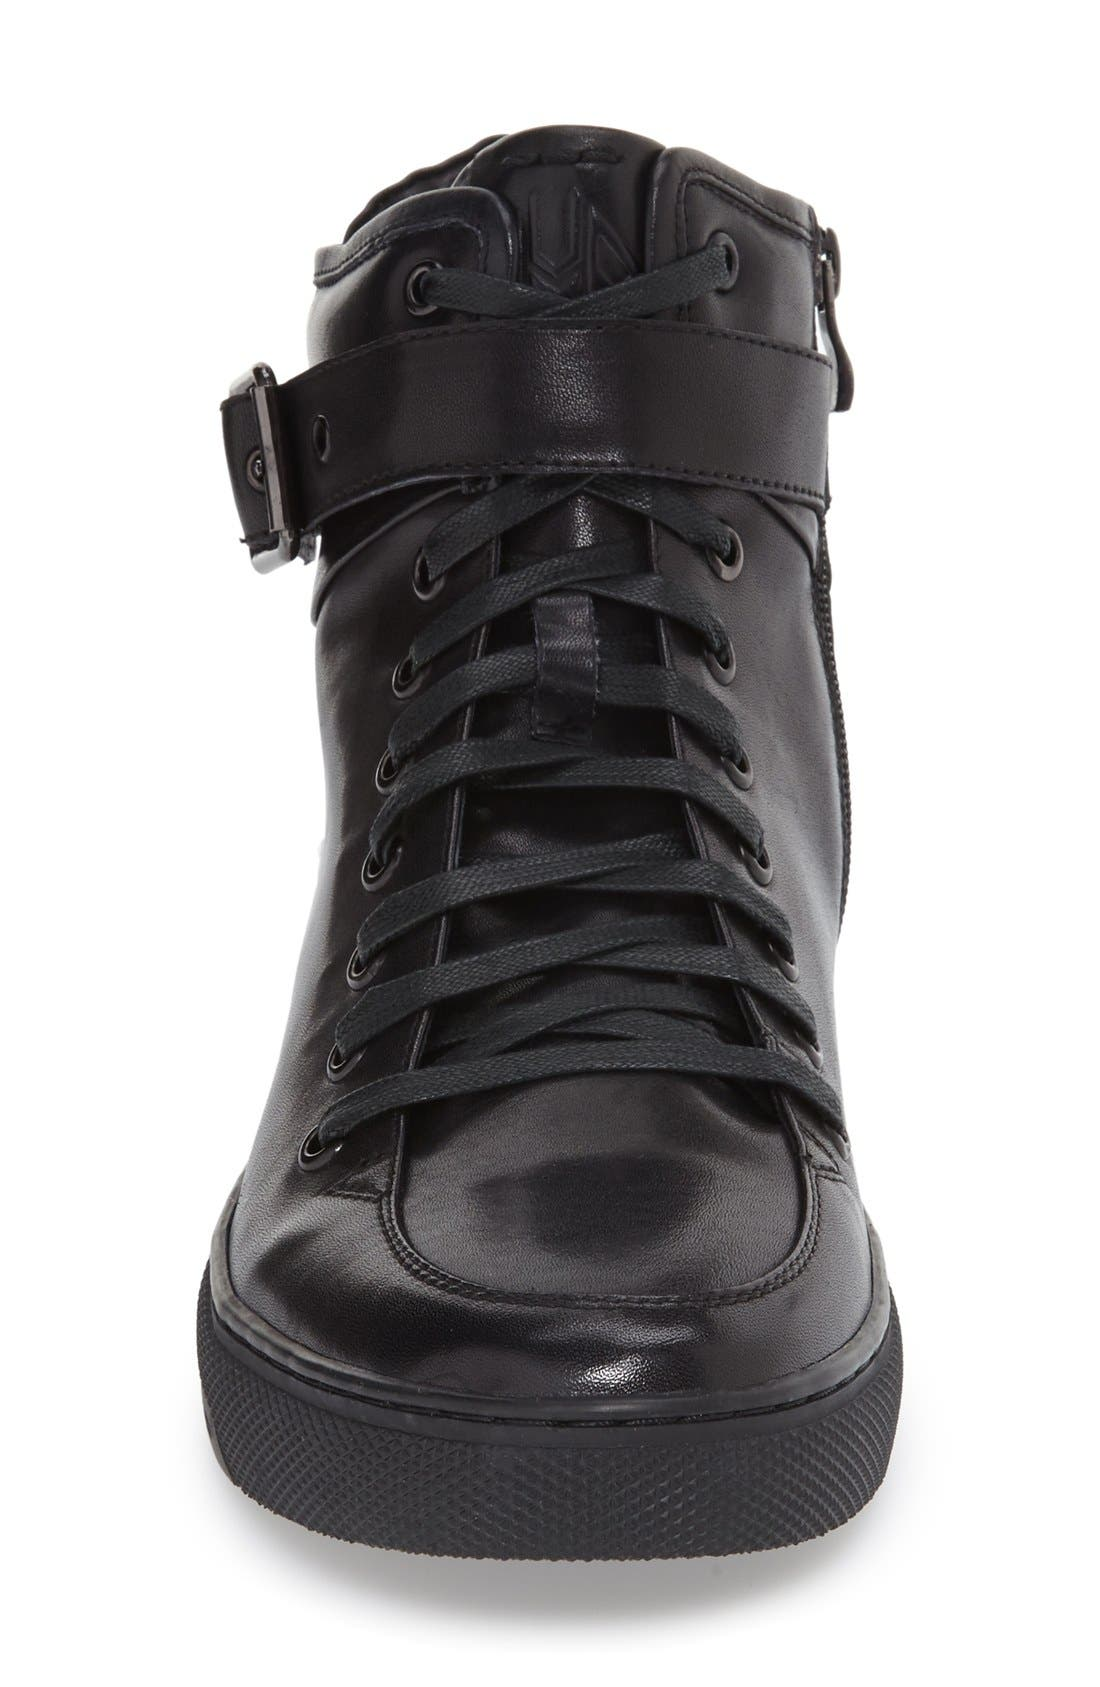 Sullivan High Top Sneaker,                             Alternate thumbnail 3, color,                             BLACK LEATHER